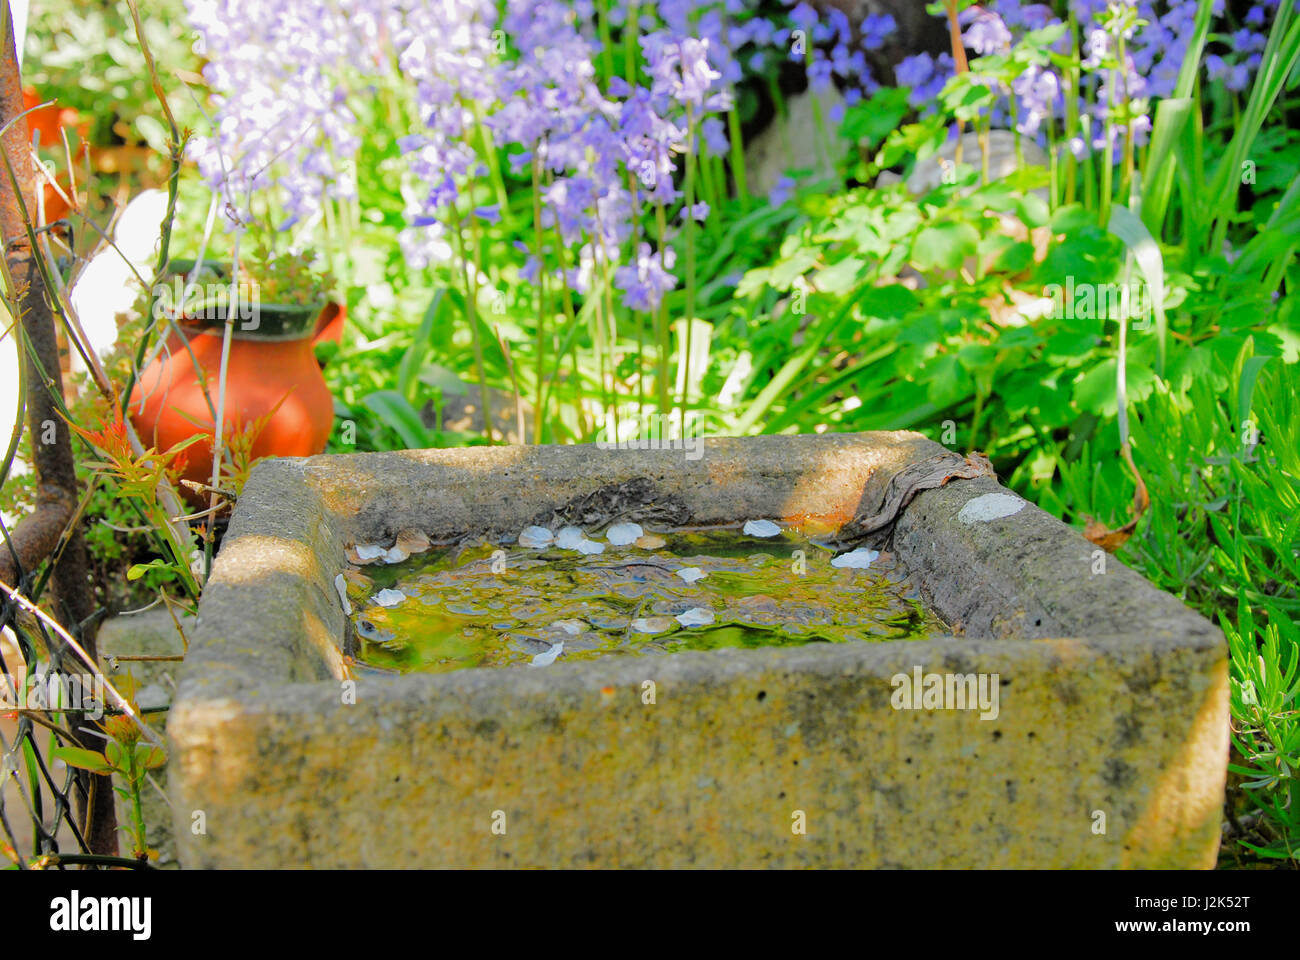 Portland, Dorset, UK. 29th April, 2017. Cherry blossom falls into a bird-bath on a sunny day in Portland Credit: - Stock Image